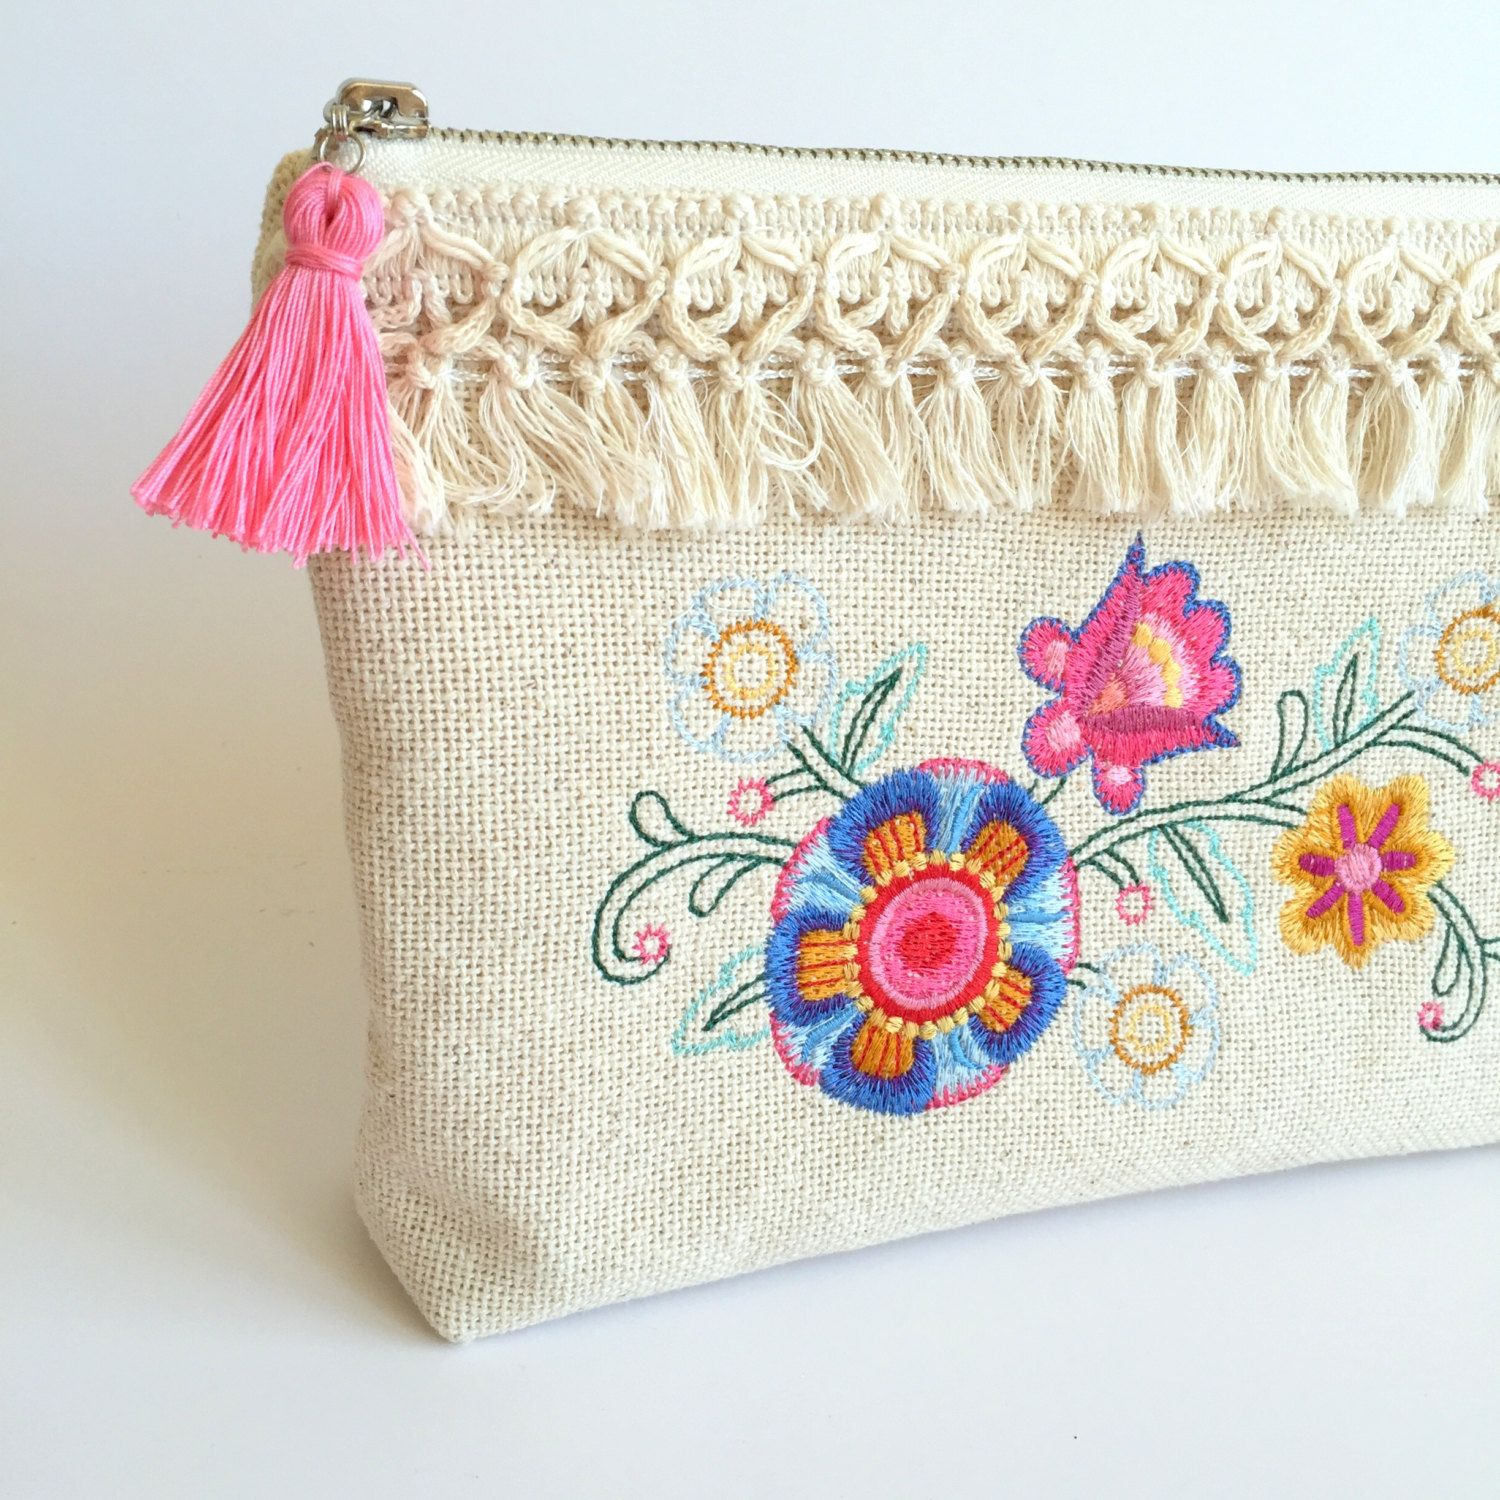 Cosmetic Bag (Medium)** - White Waffle Weave, Embroidered